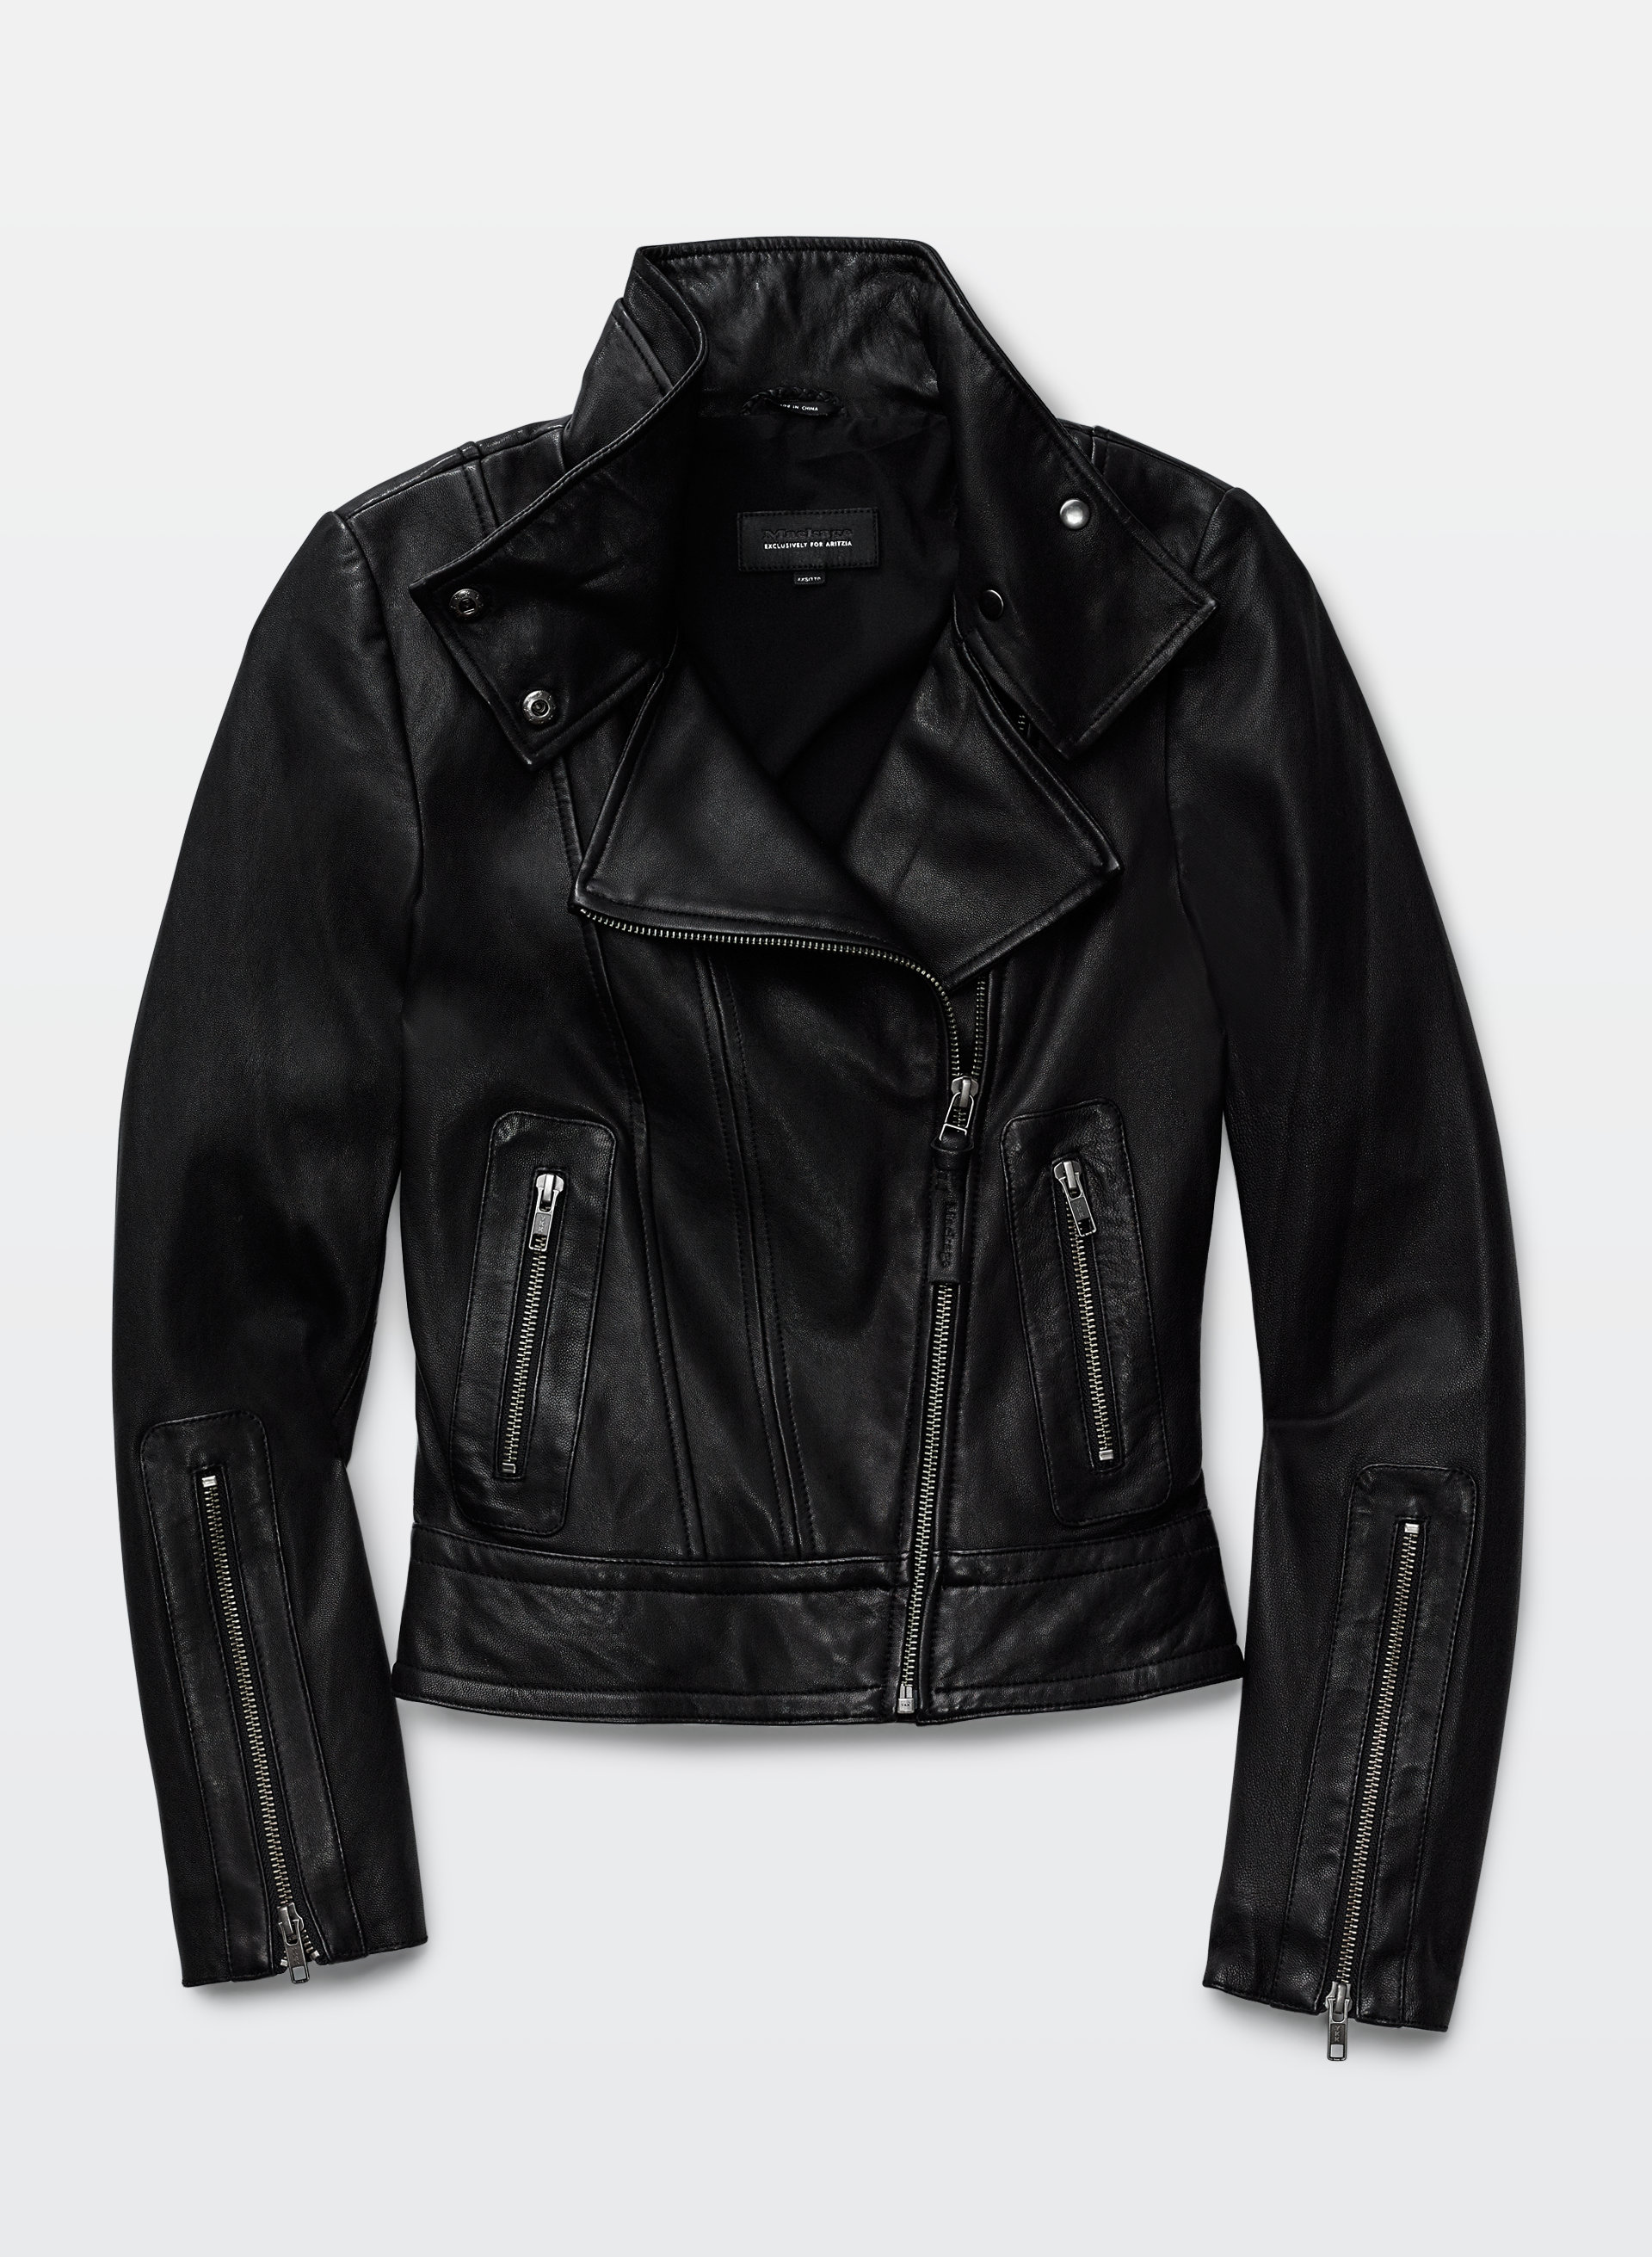 mackage for aritzia leather jacket Black Friday 2016 Deals Sales ...